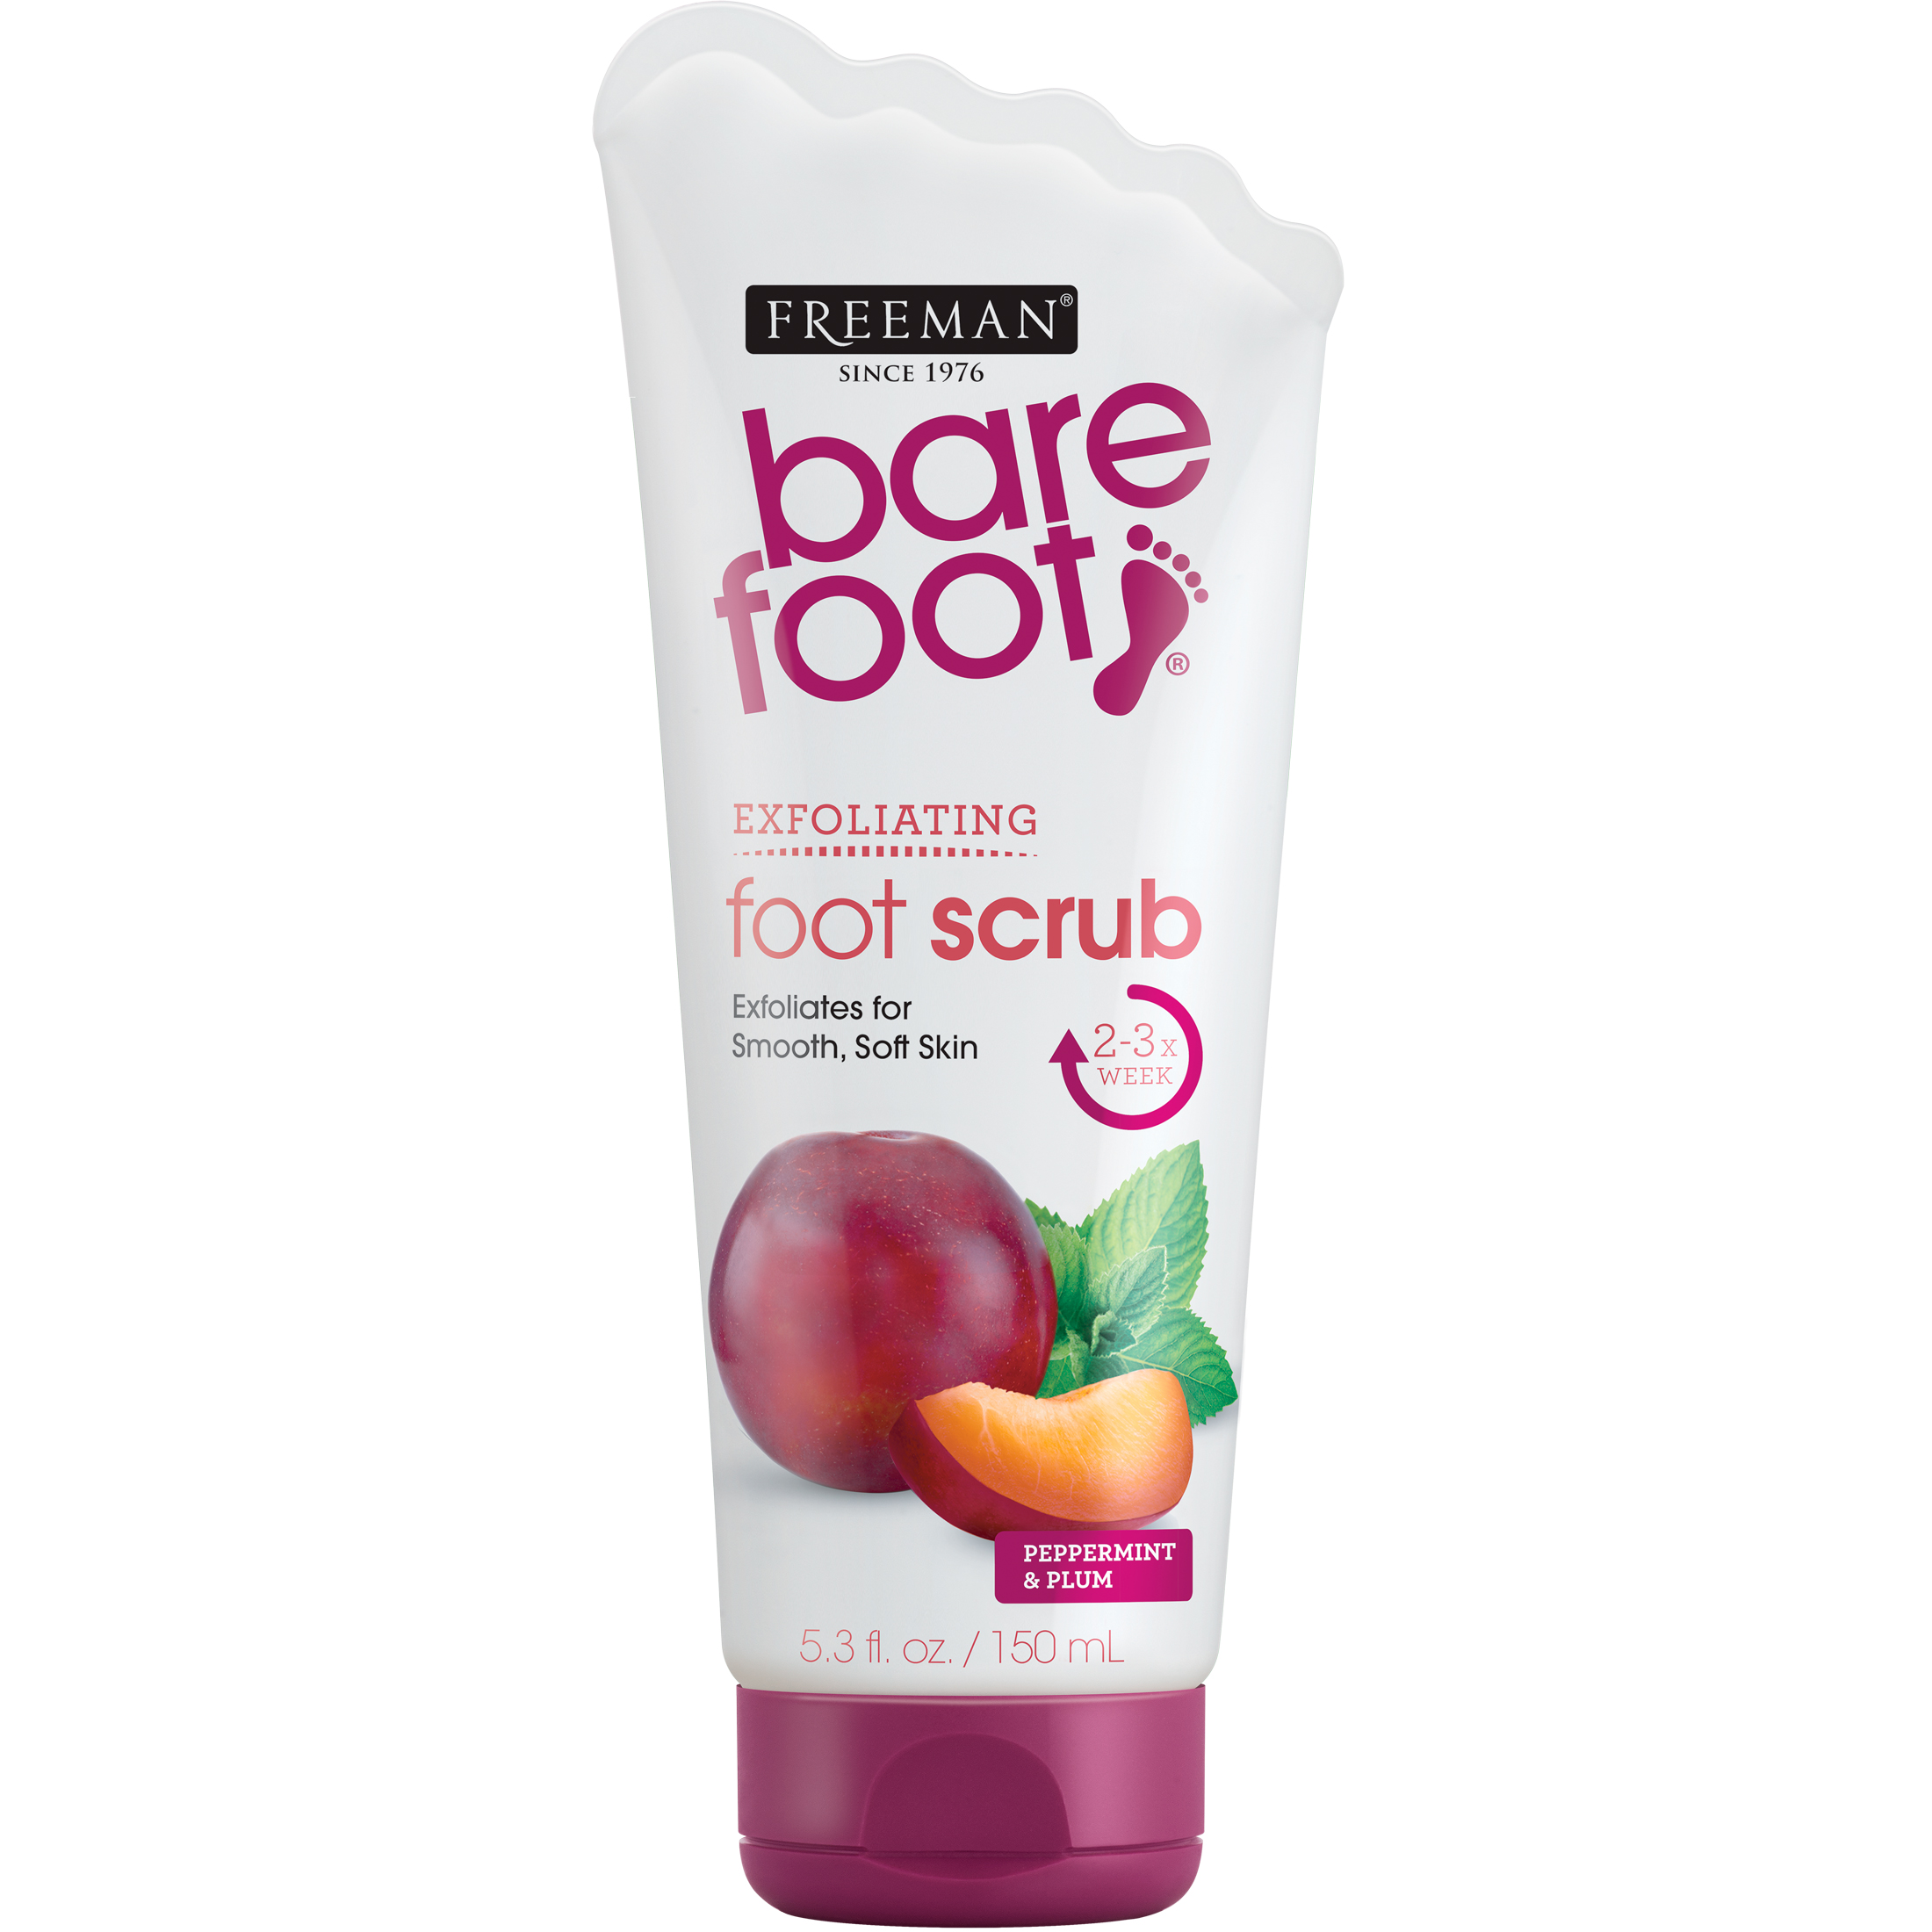 Freeman Bare Foot Creamy Pumice Foot Scrub, 5.3 fl oz